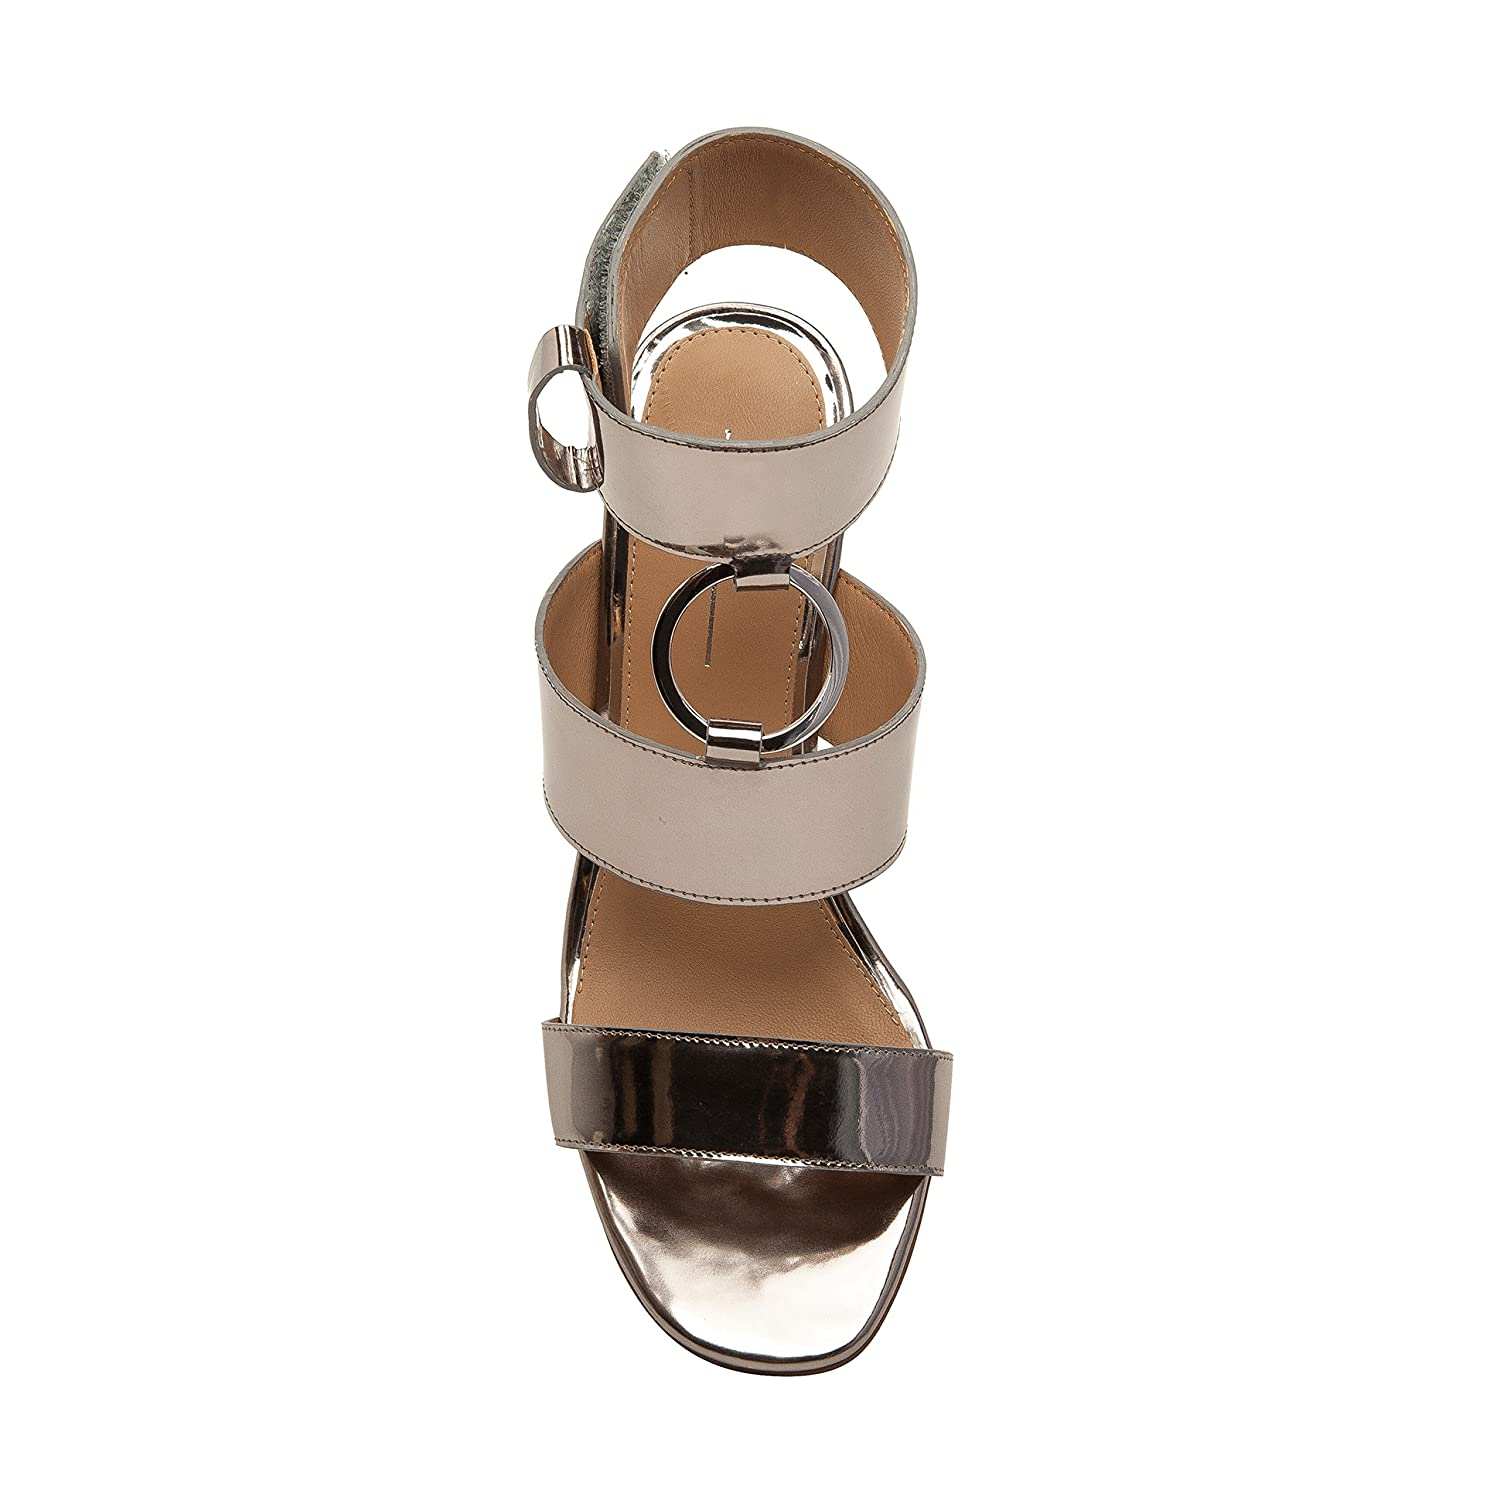 Linea Paolo EVA | Women's Metal Ring Adorned Cuffed Comfortable Wedge Sandal B07957539W 9 M US|Silver Leather